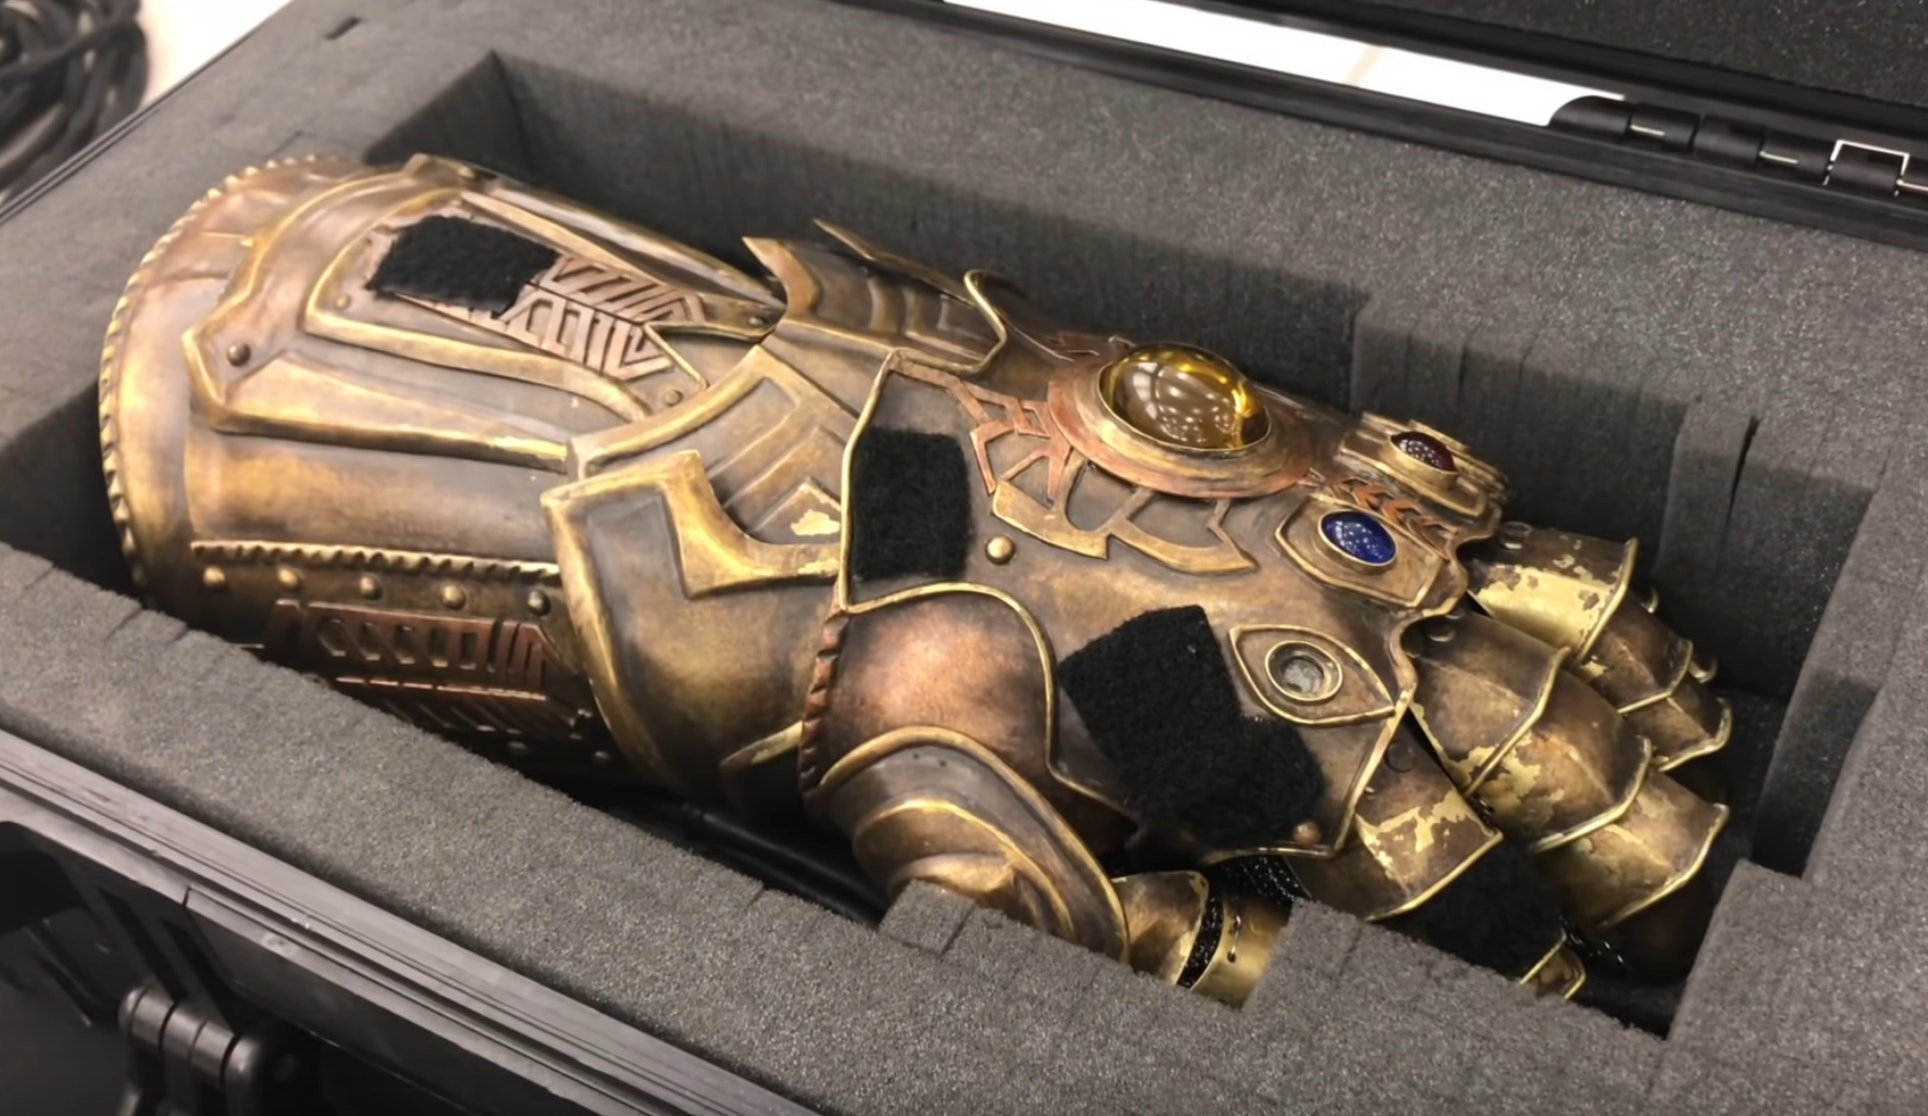 The Real Infinity Gauntlet